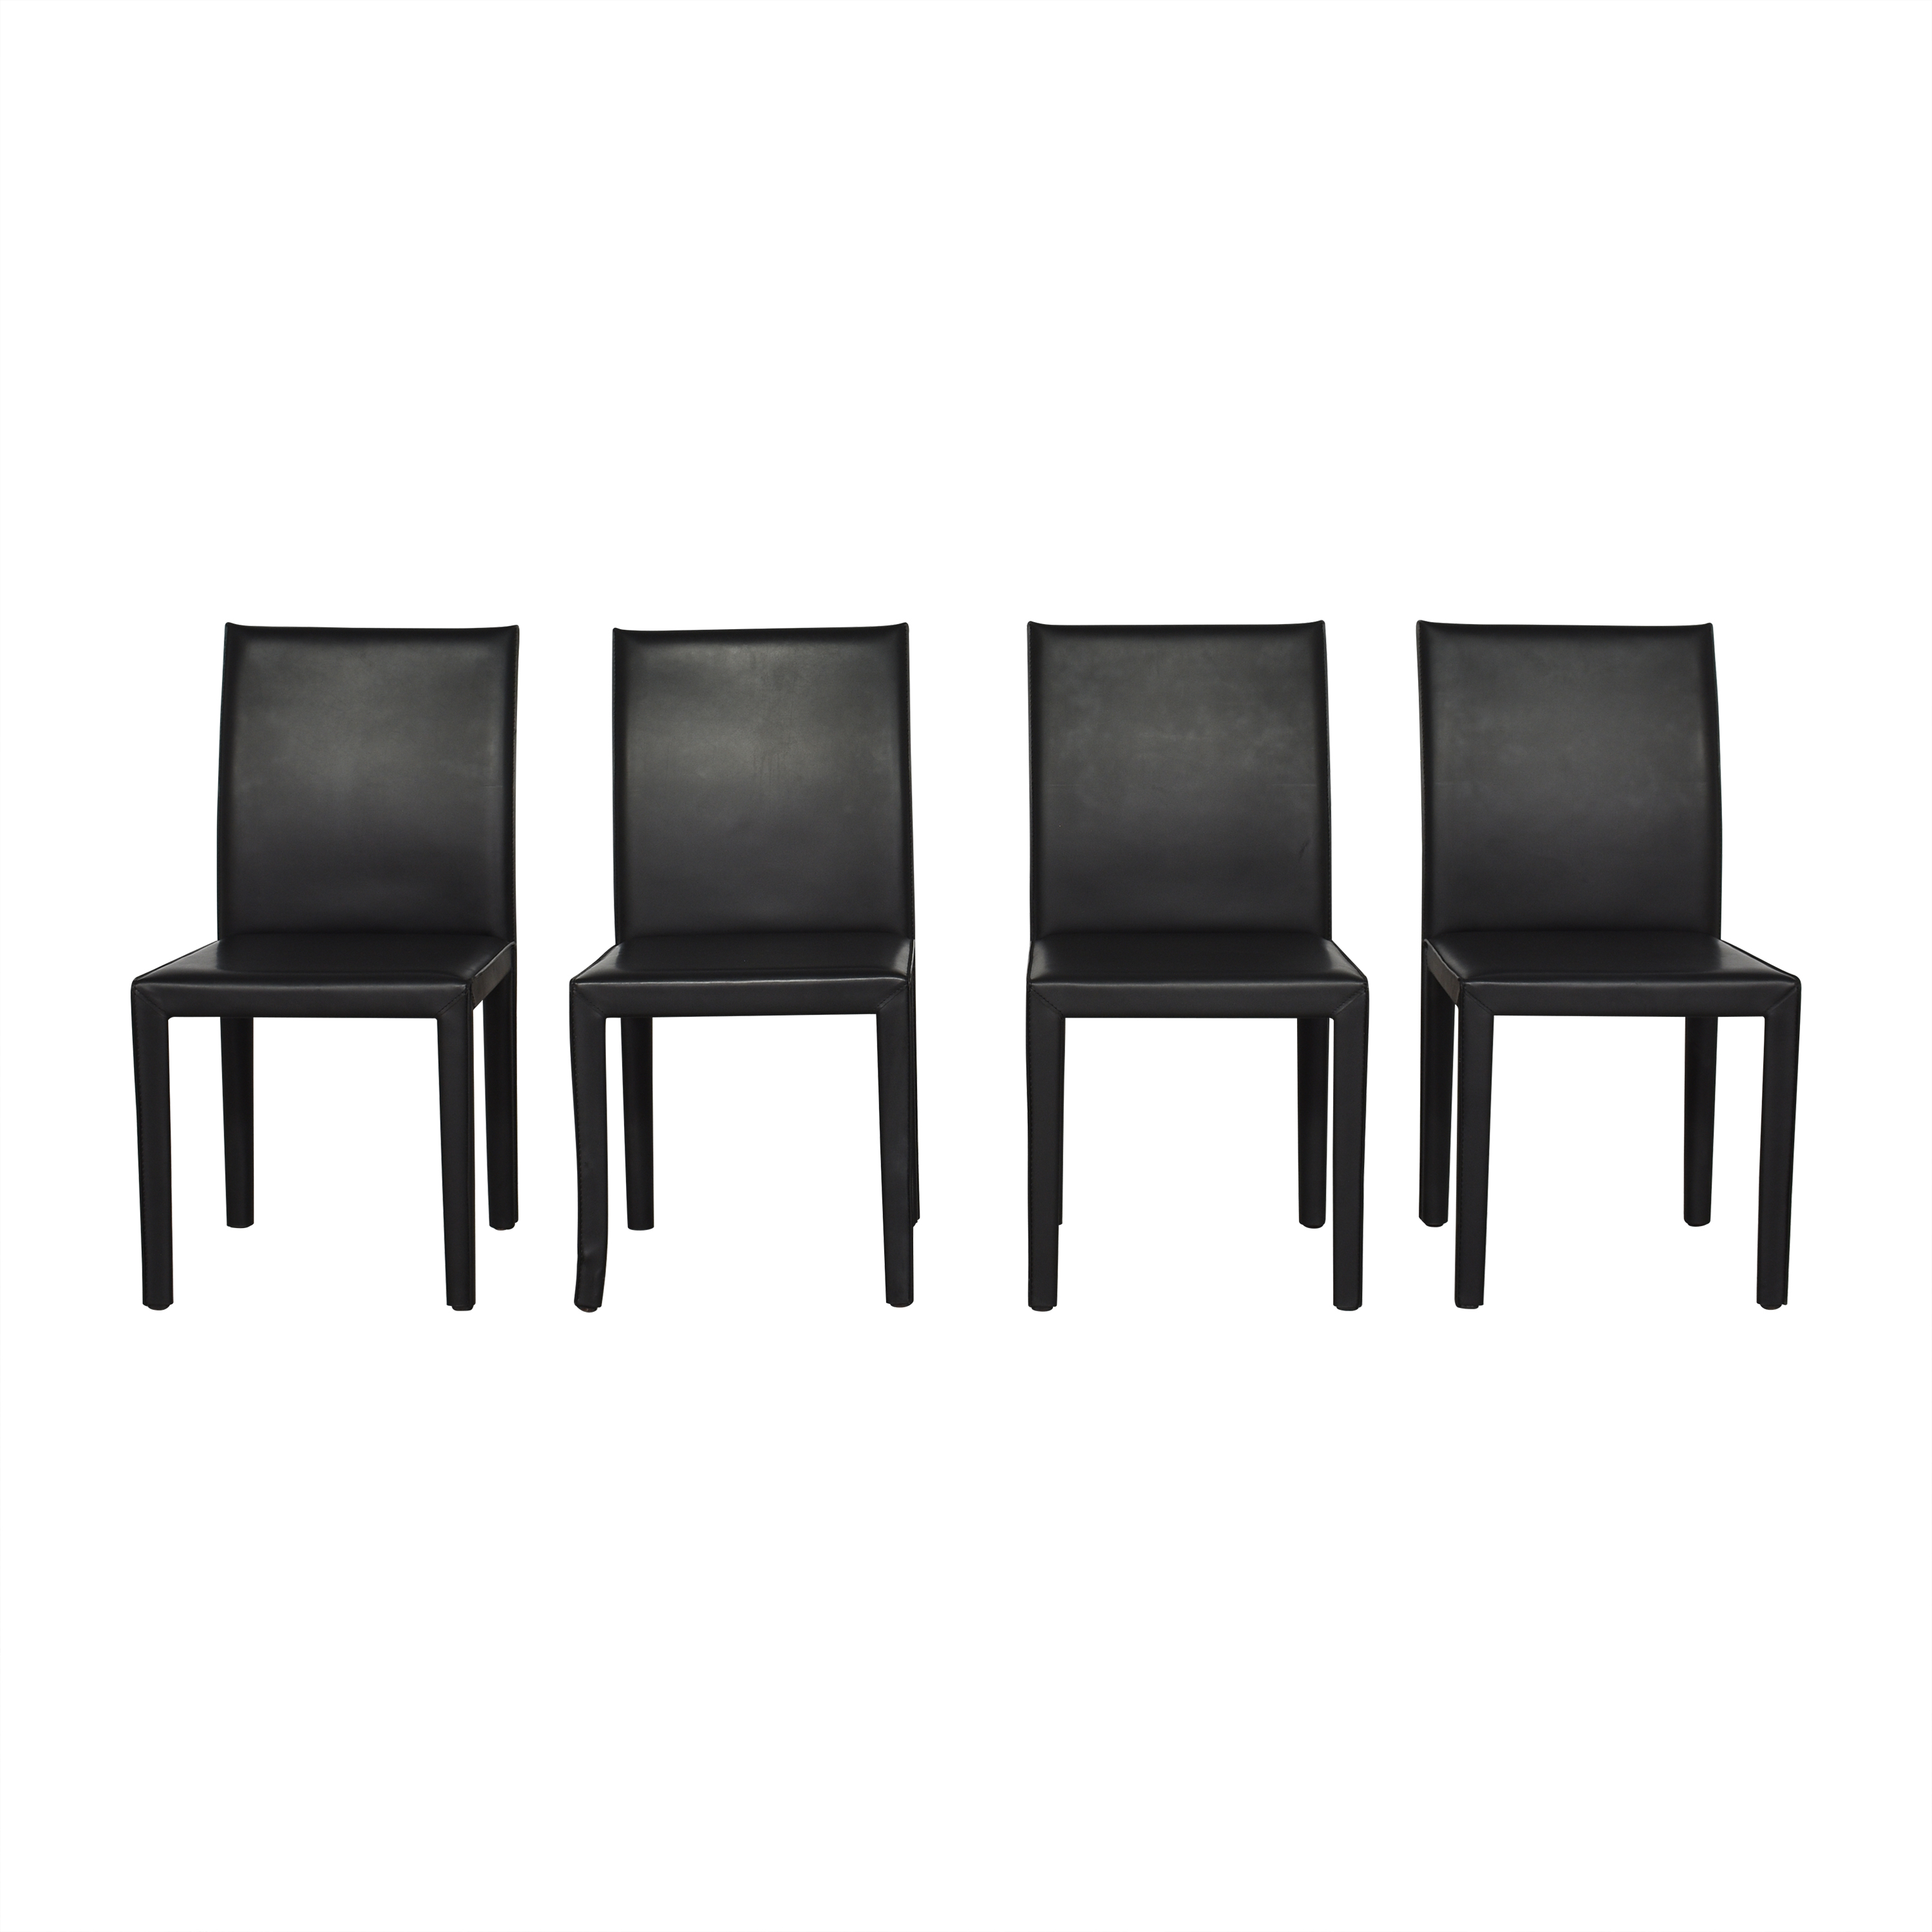 Crate & Barrel Crate & Barrel Folio Chairs by Marie Yee coupon